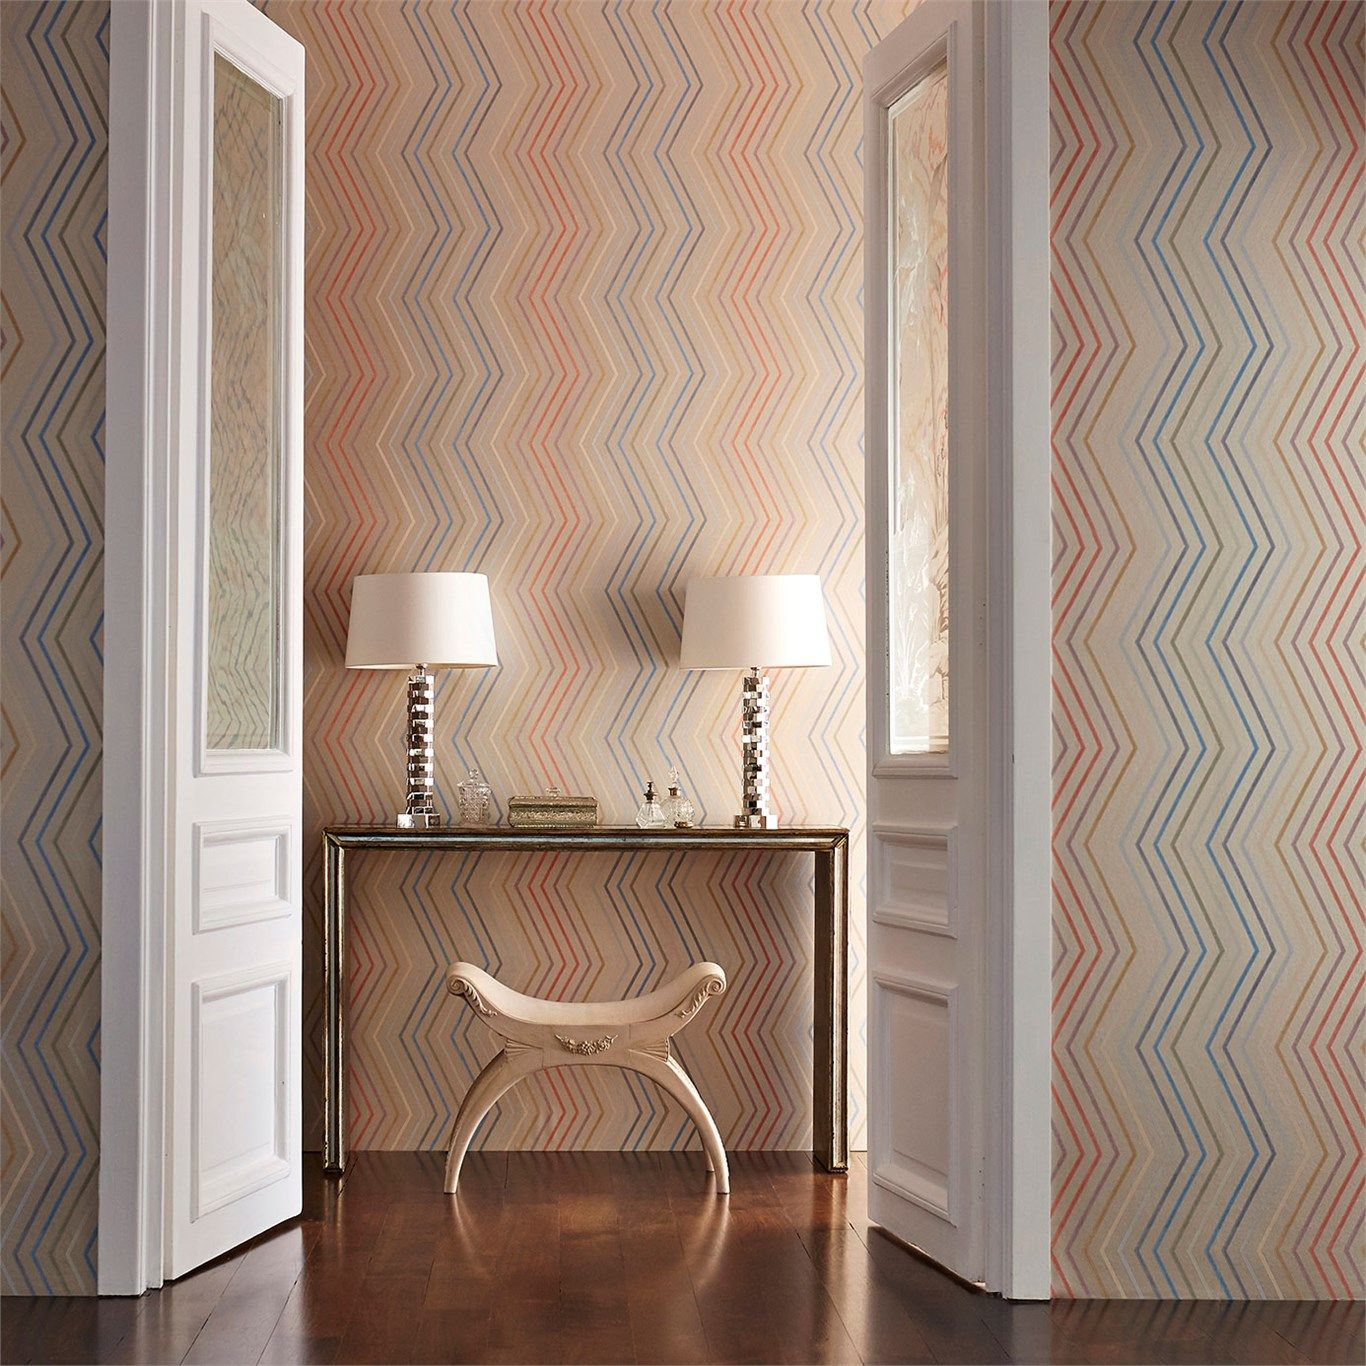 Products | Harlequin - Designer Fabrics and Wallpapers | Tresillo (HETH111434) | Tresillo Wallpapers